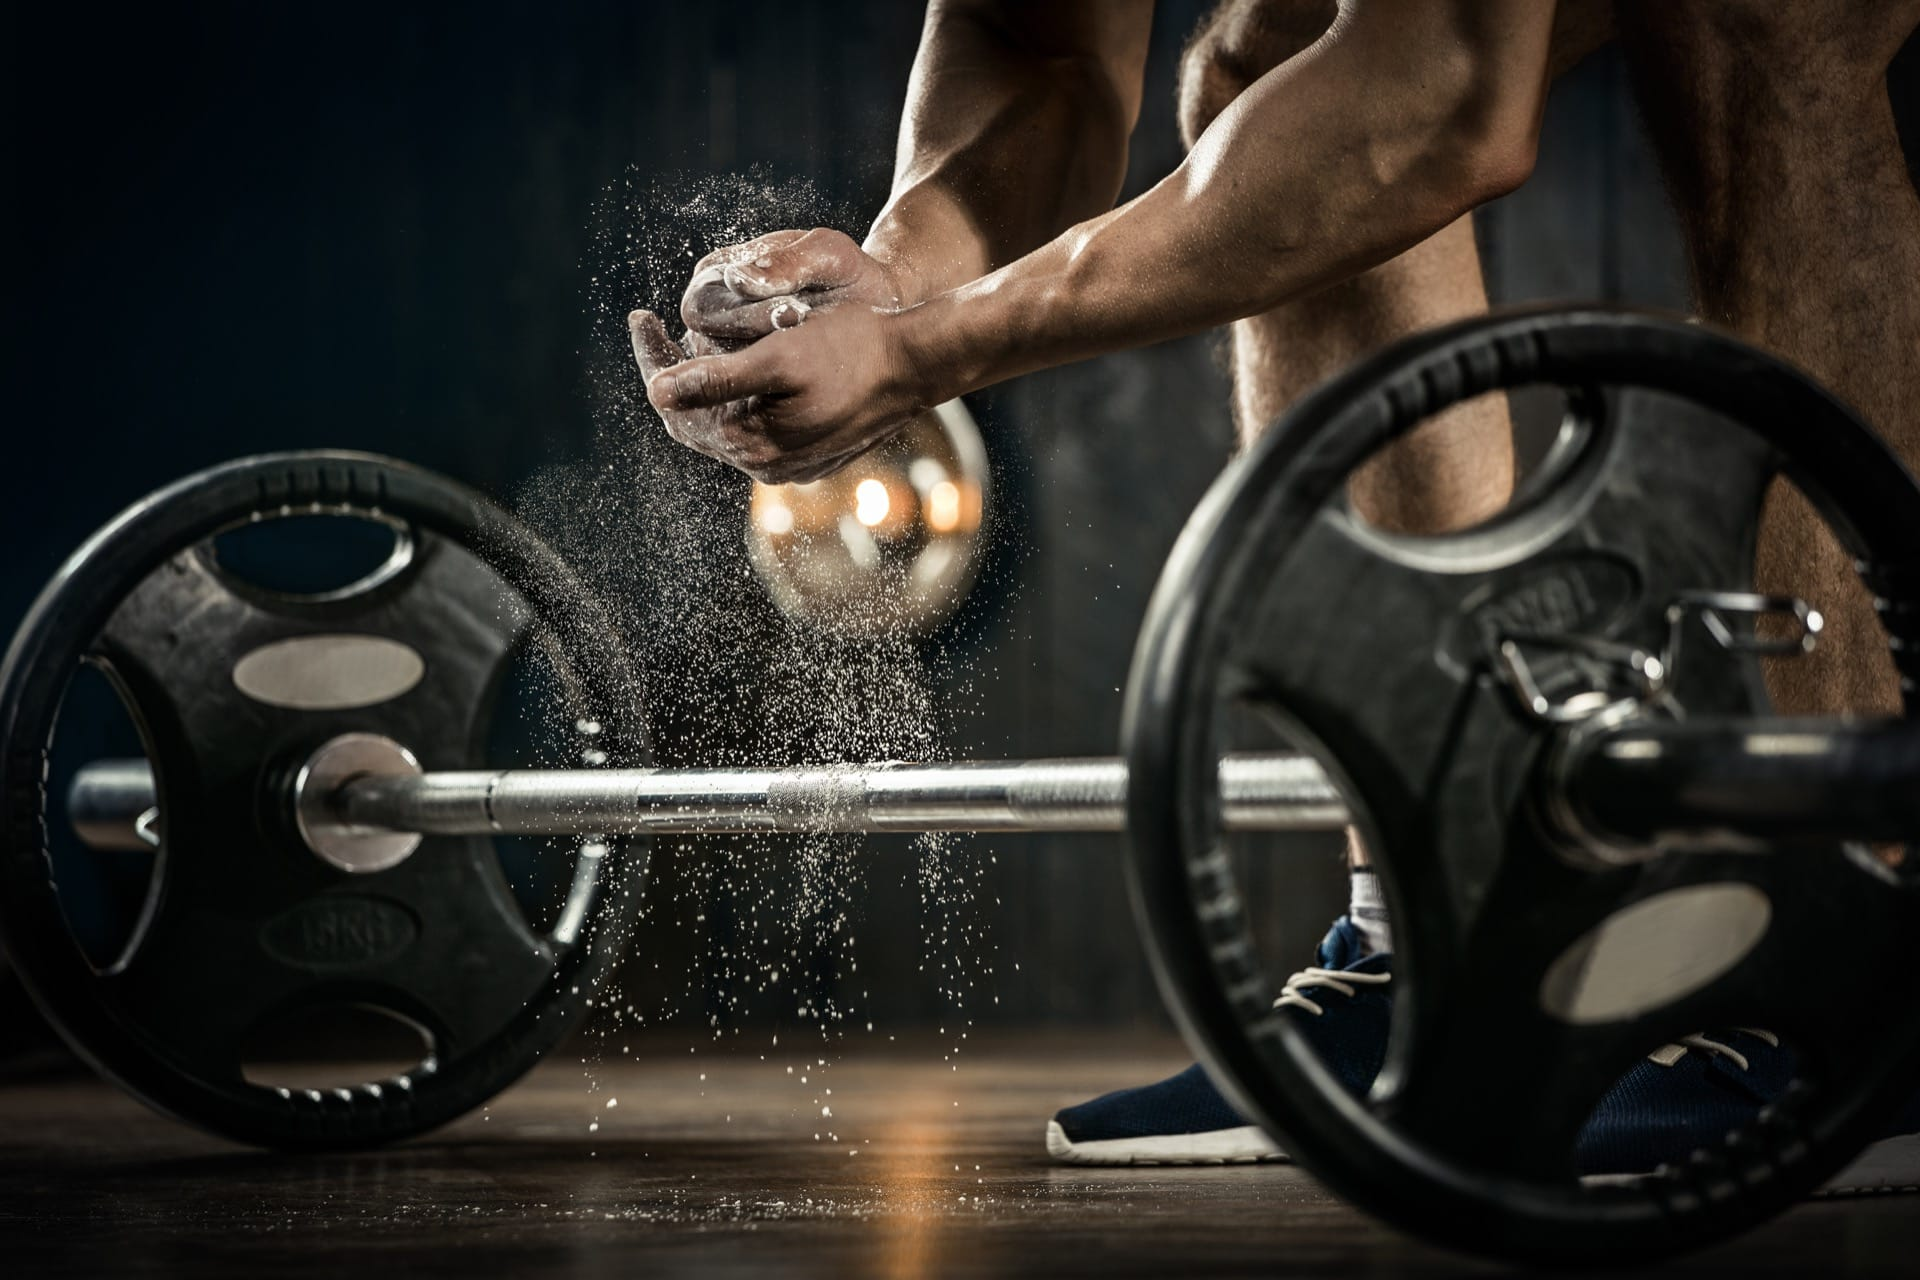 athlete getting ready for weight lifting training your health